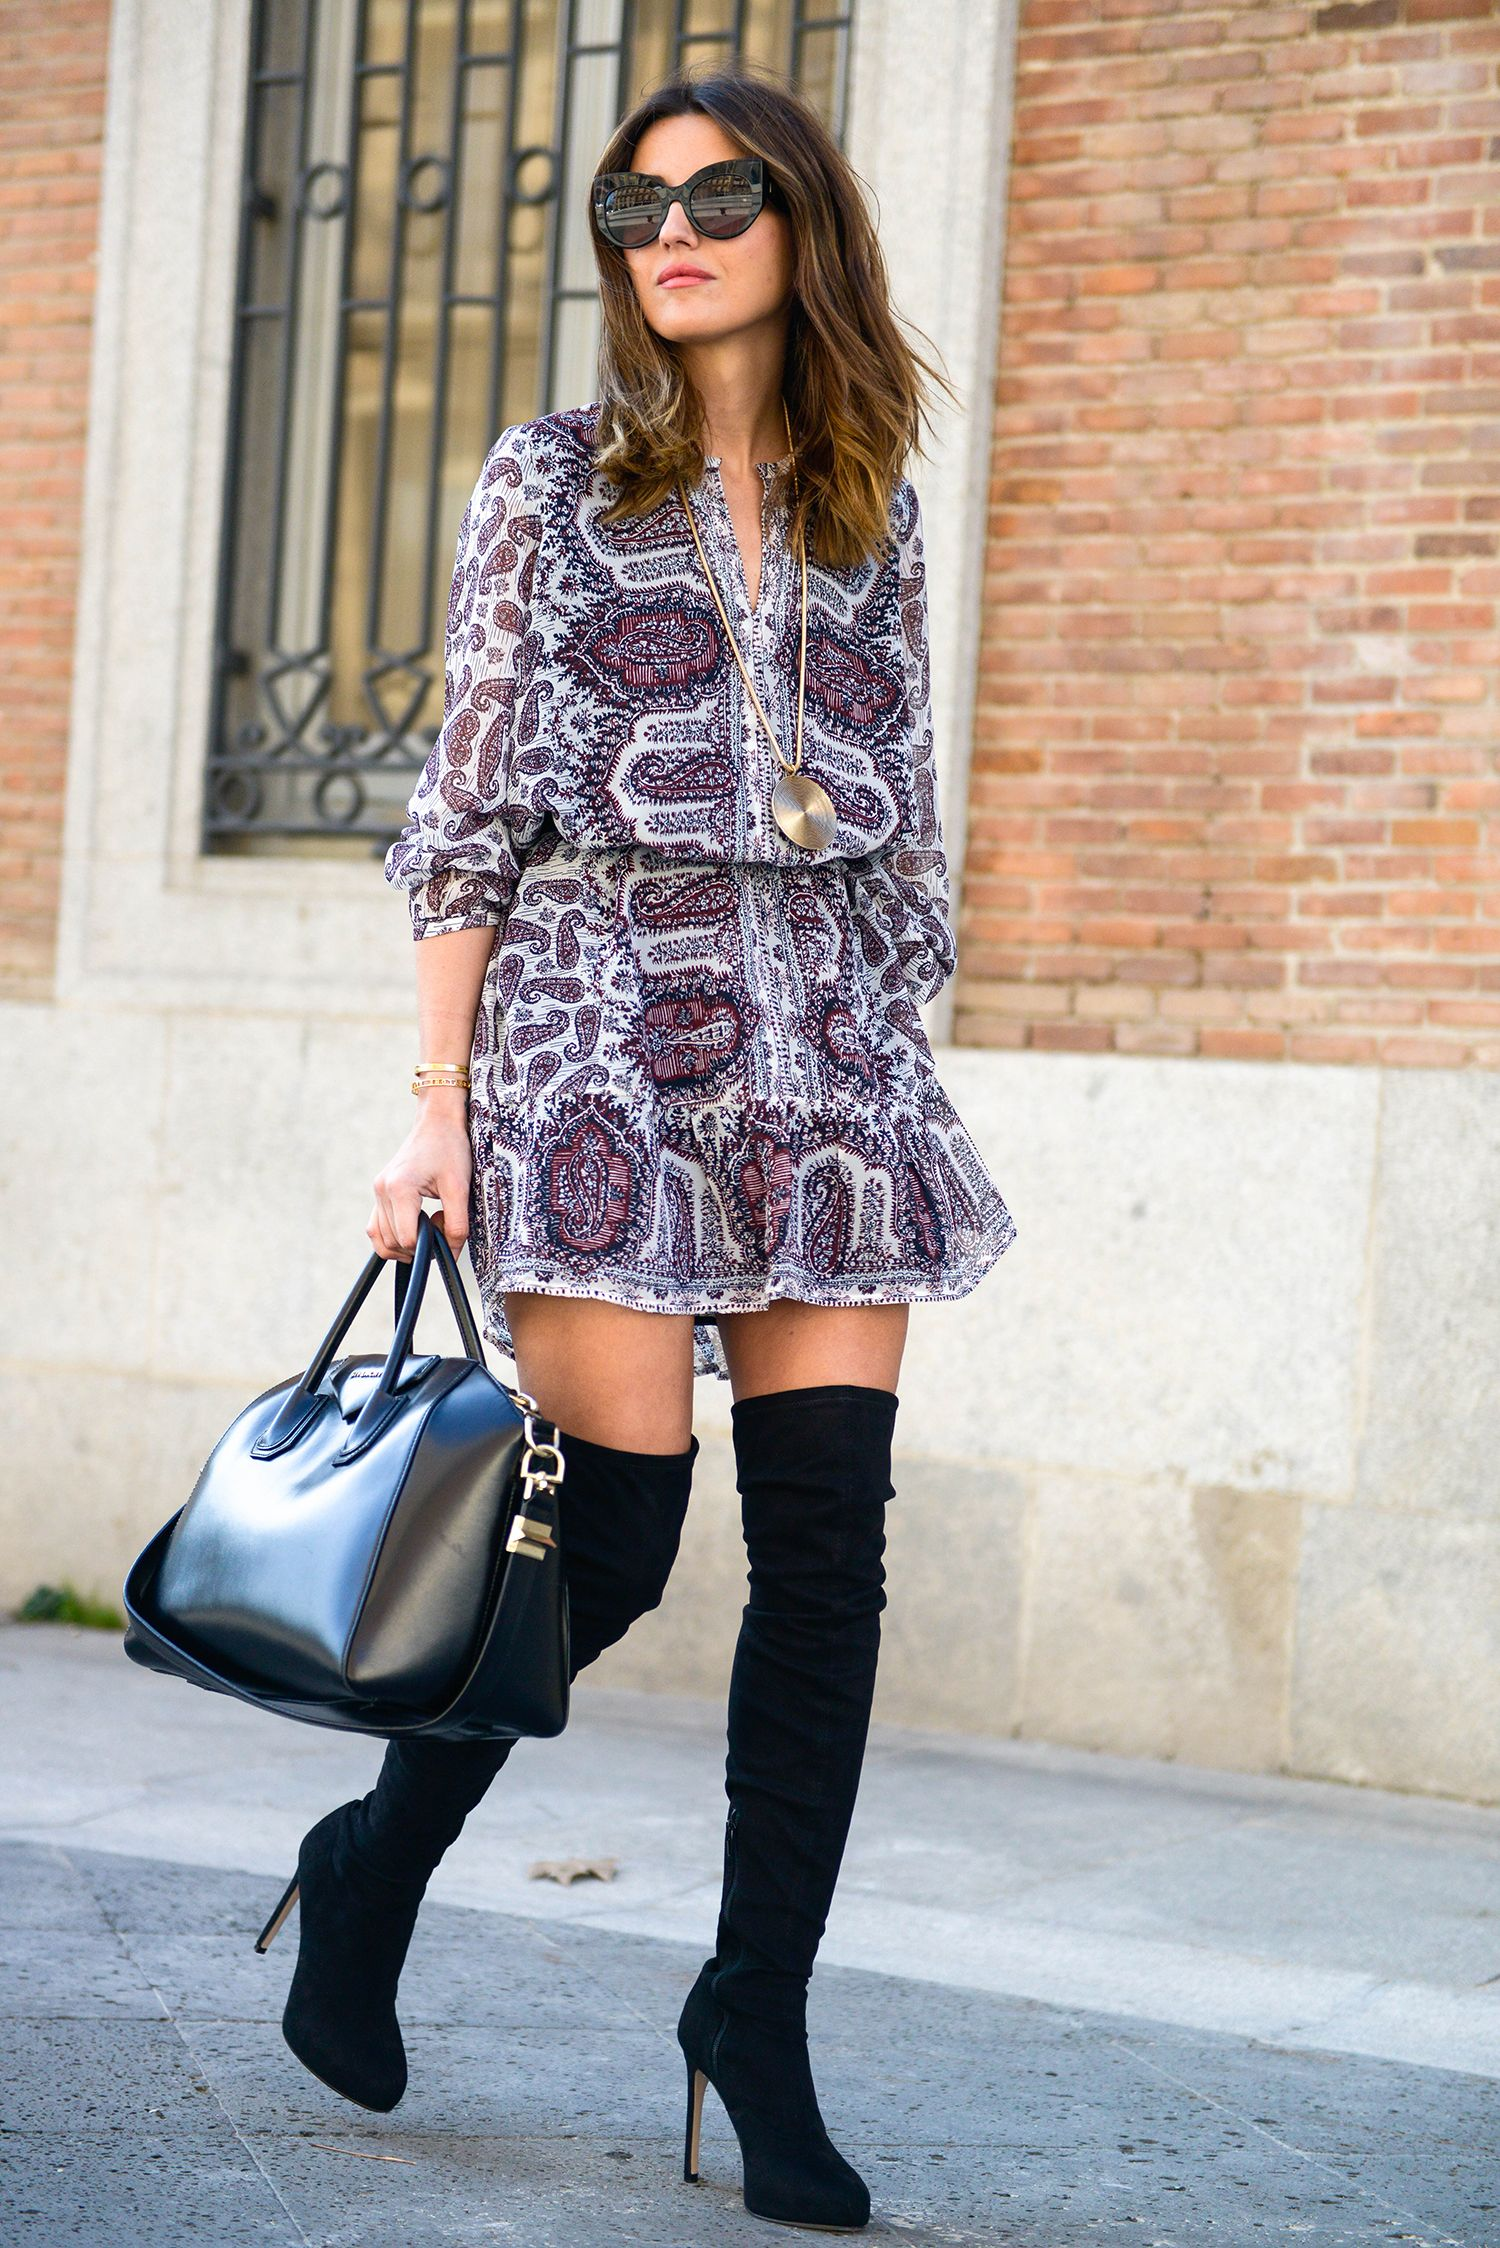 Cute Outfits With Thigh High Boots - Yu Boots